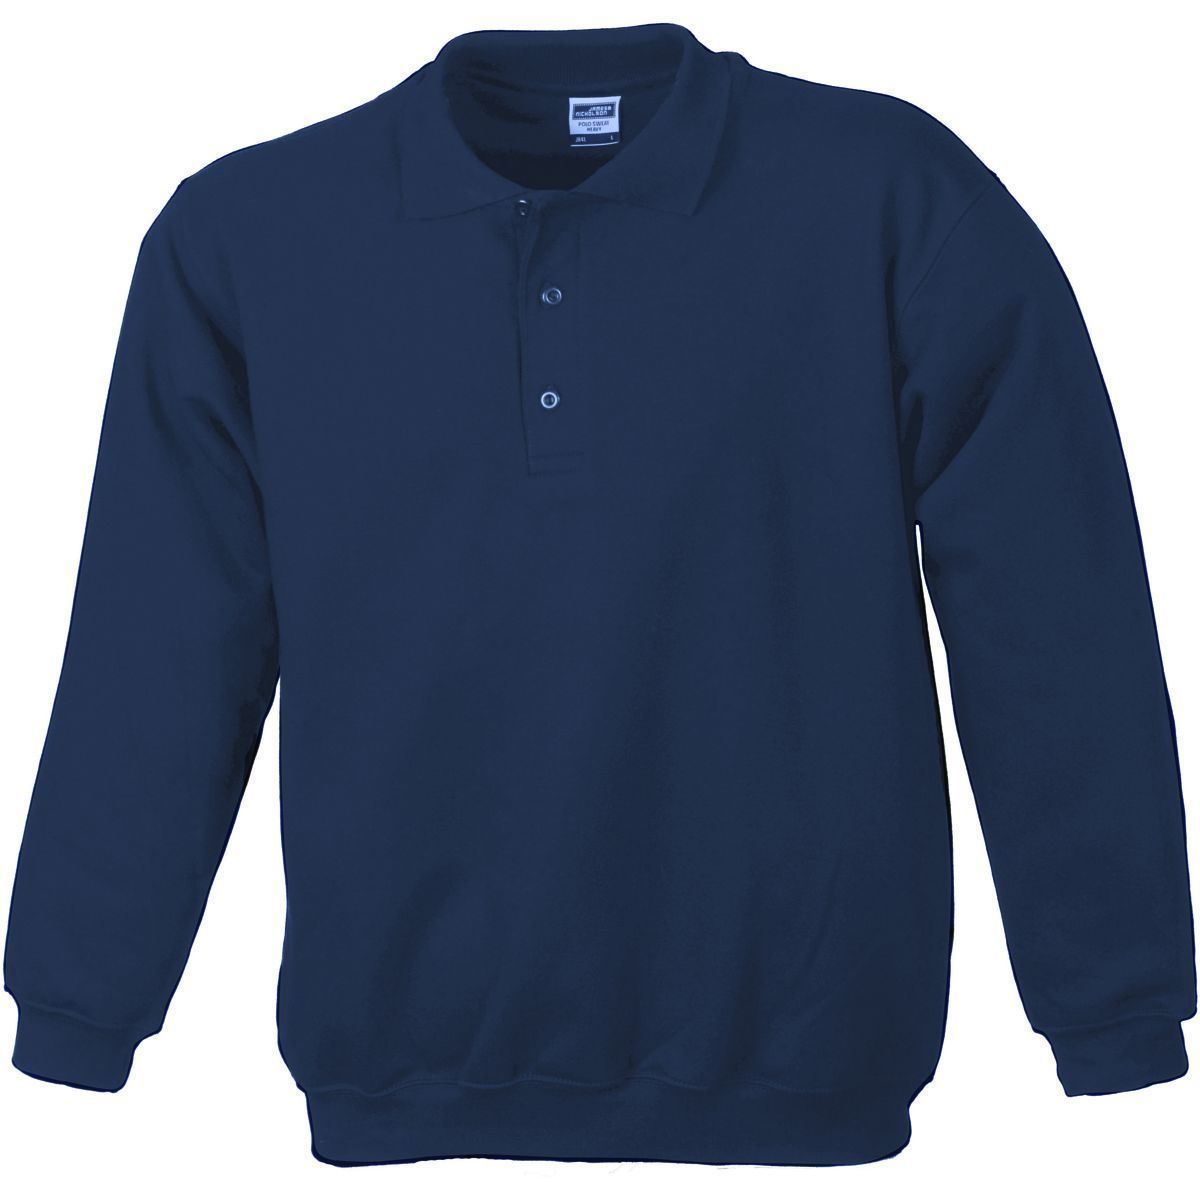 sweat-shirt col polo adulte mixte homme femme